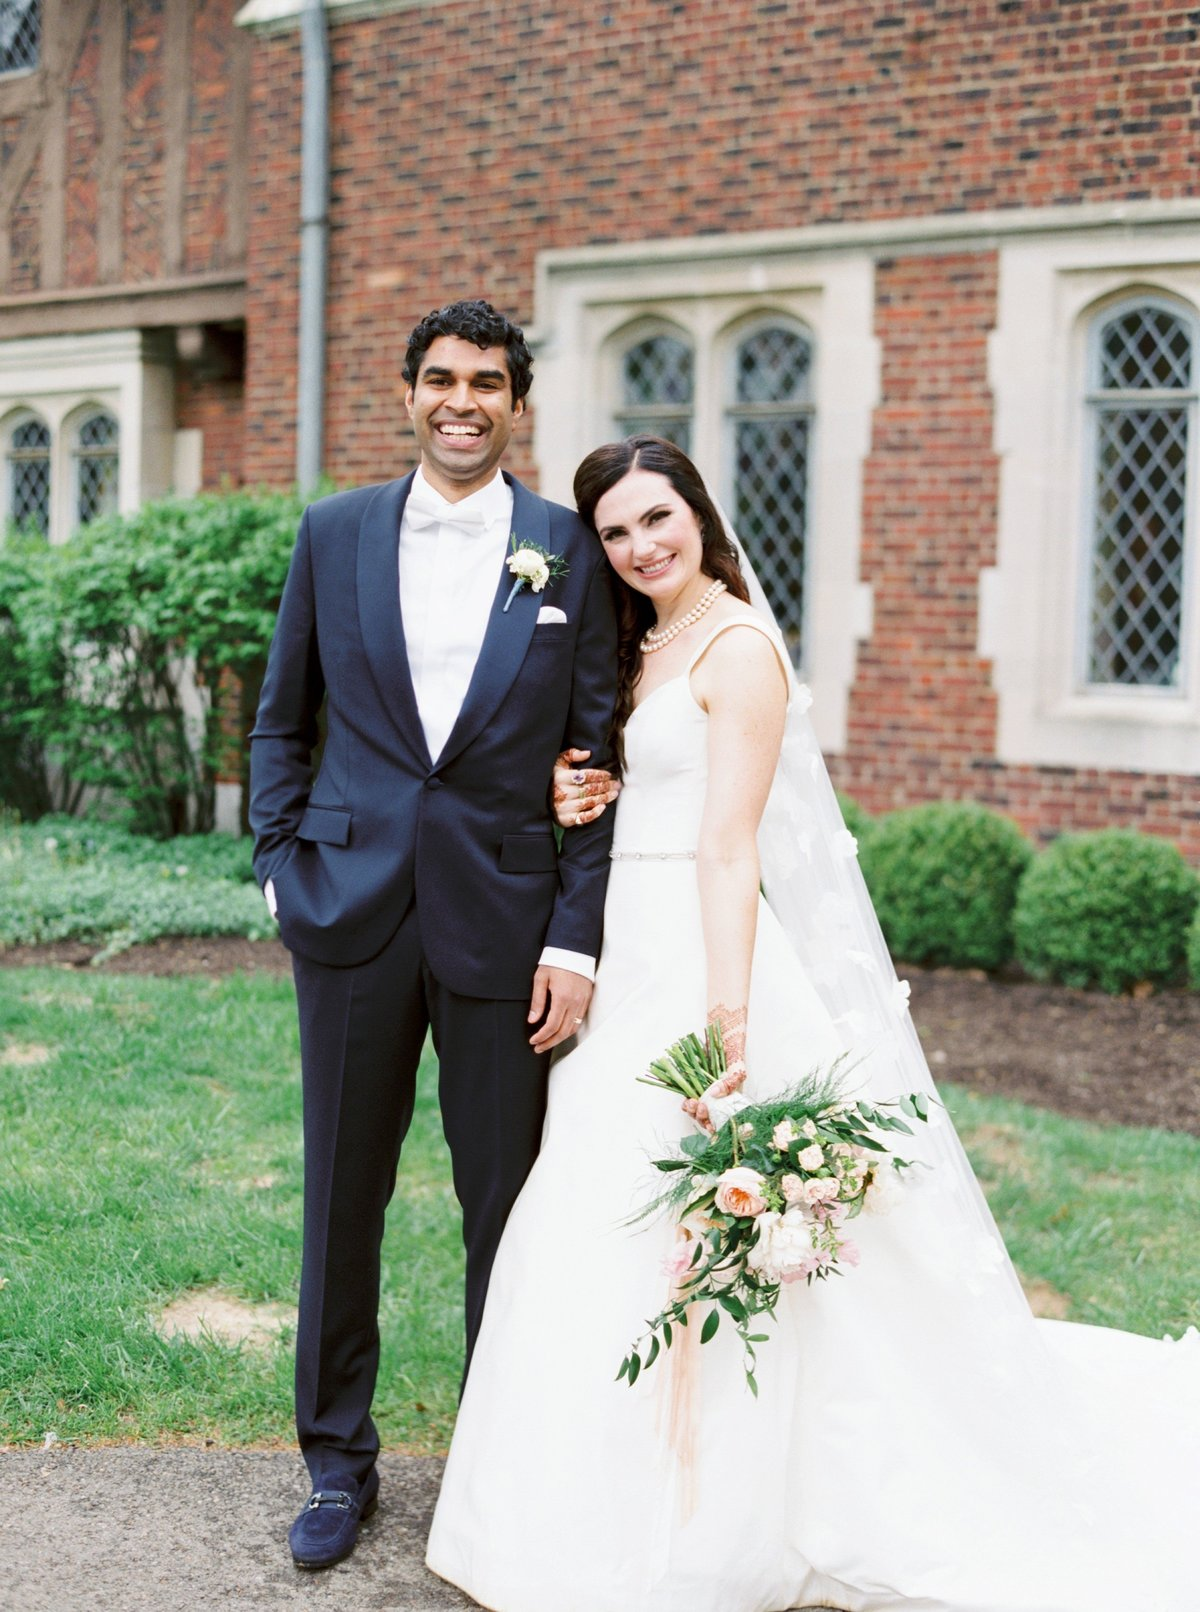 nicoleclareyphotography_hannah+akash_cincinnati_wedding_0015